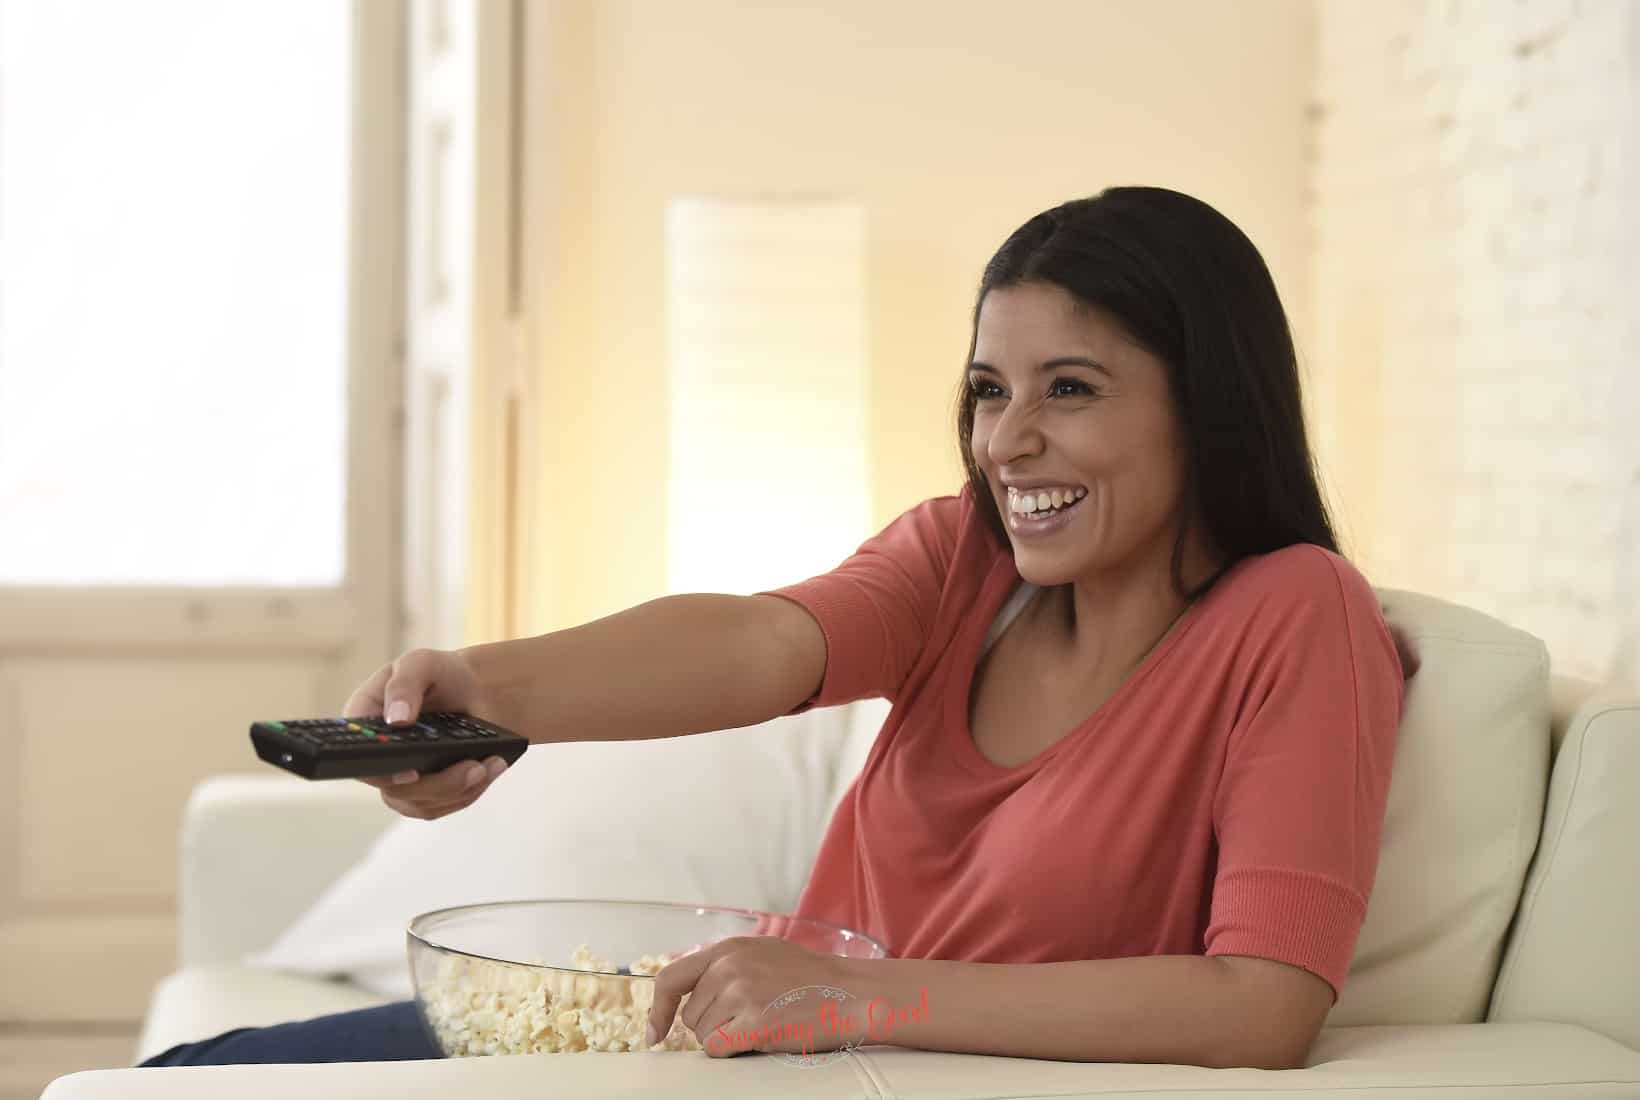 female in a chair with a remote control and a bowl of popcorn